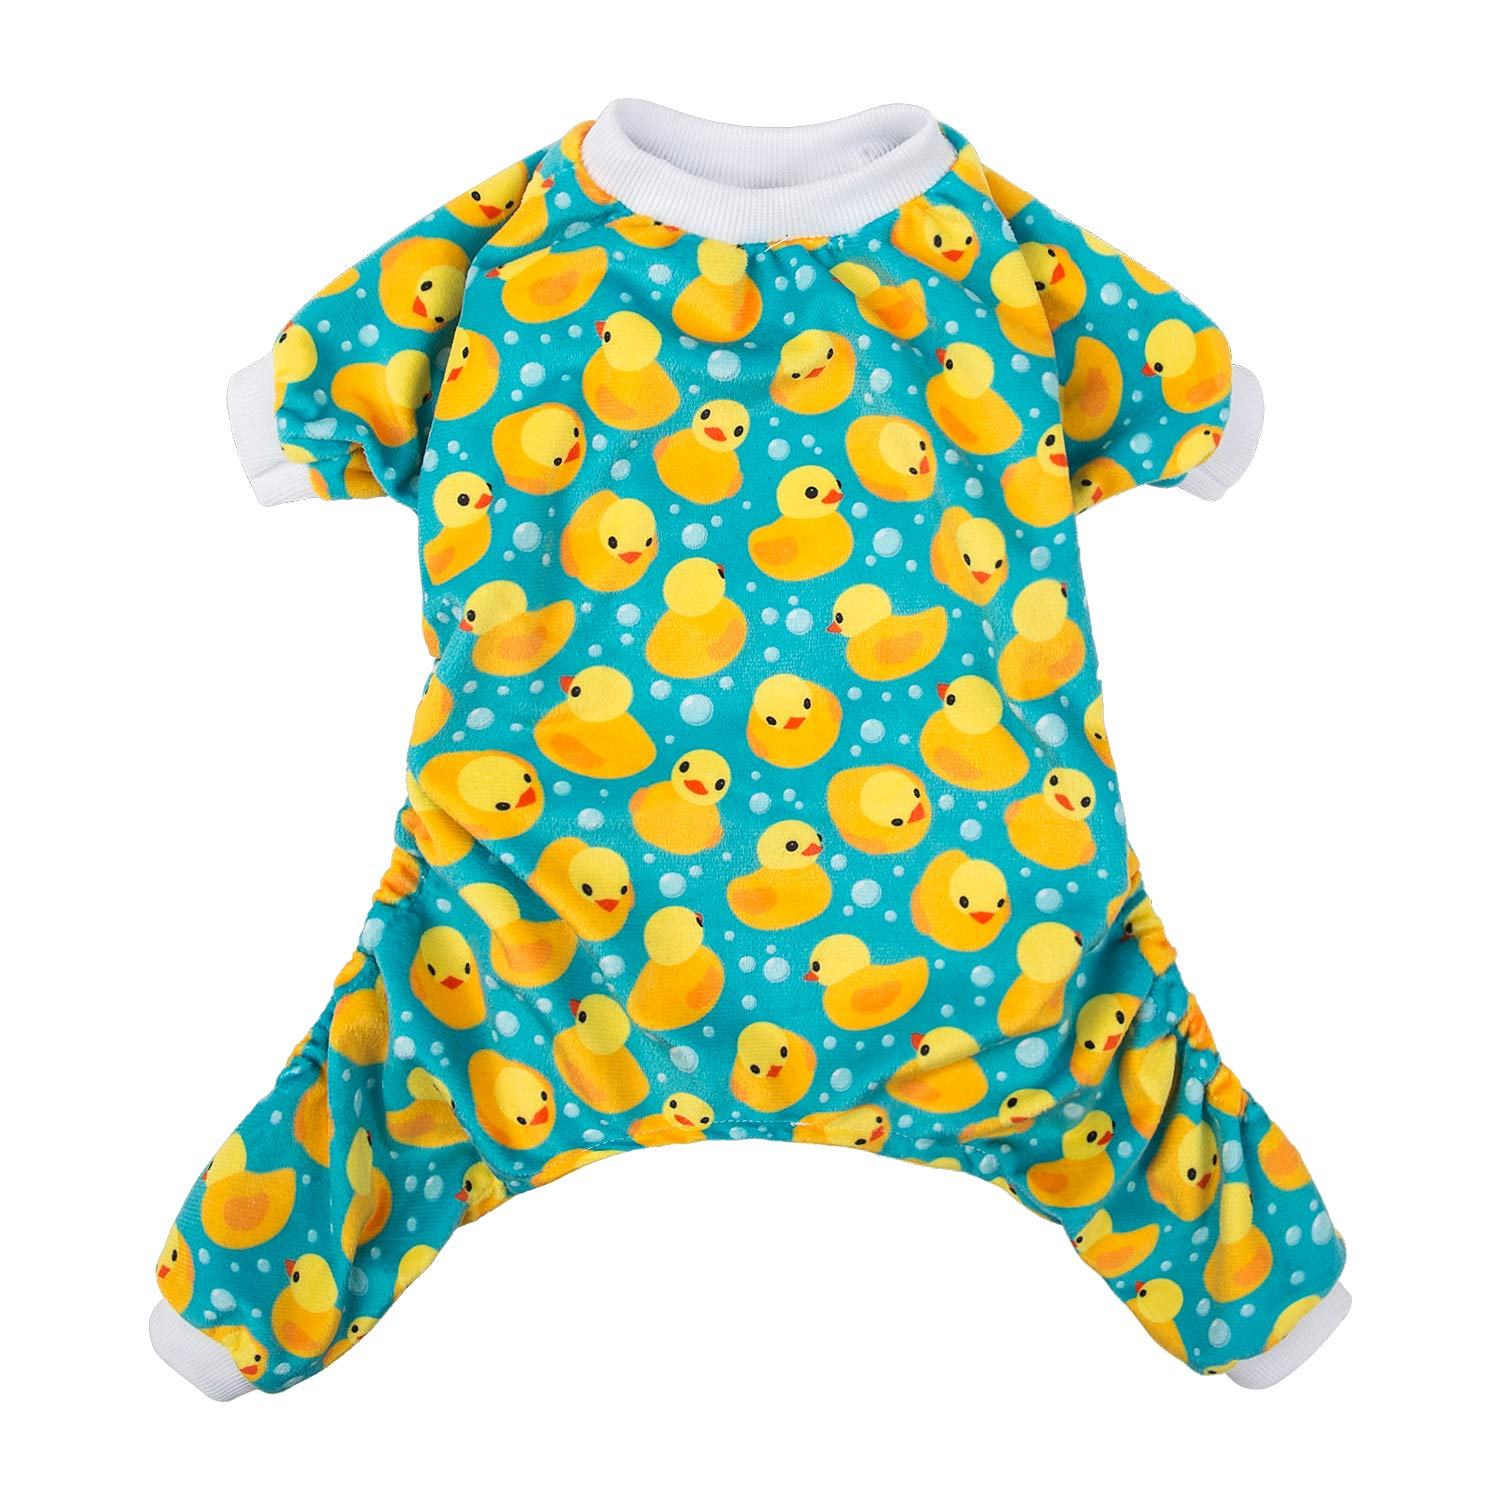 Multi-colord M Multi-colord M CuteBone Dog Pajamas Yellow Ducks Dog Apparel Dog Jumpsuit Pet Clothes Pajamas Puppy Clothes P50M